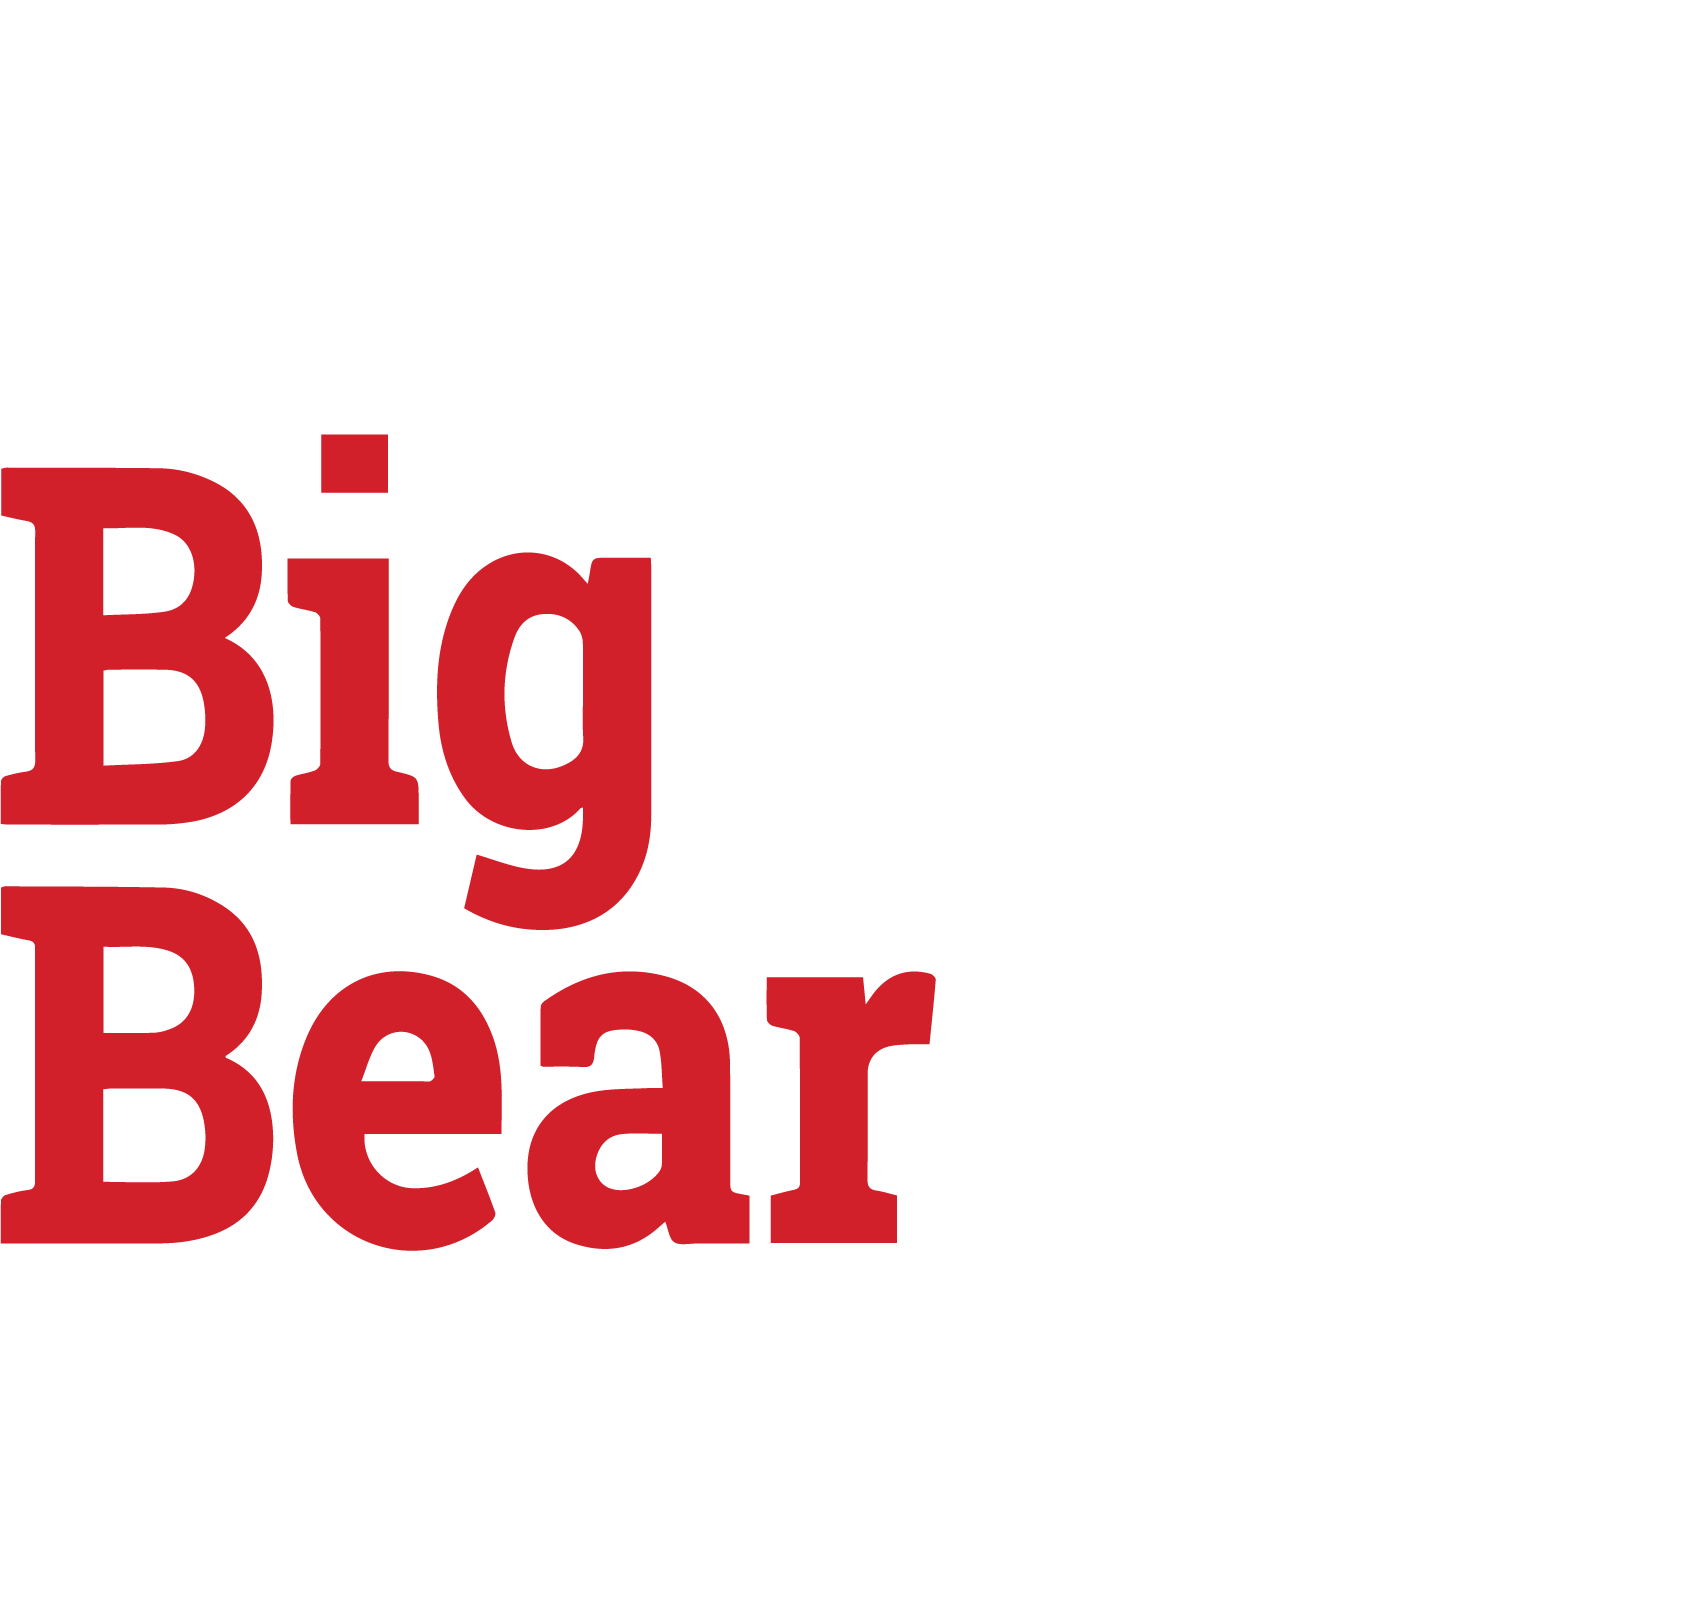 Big Bear Bikes Ltd